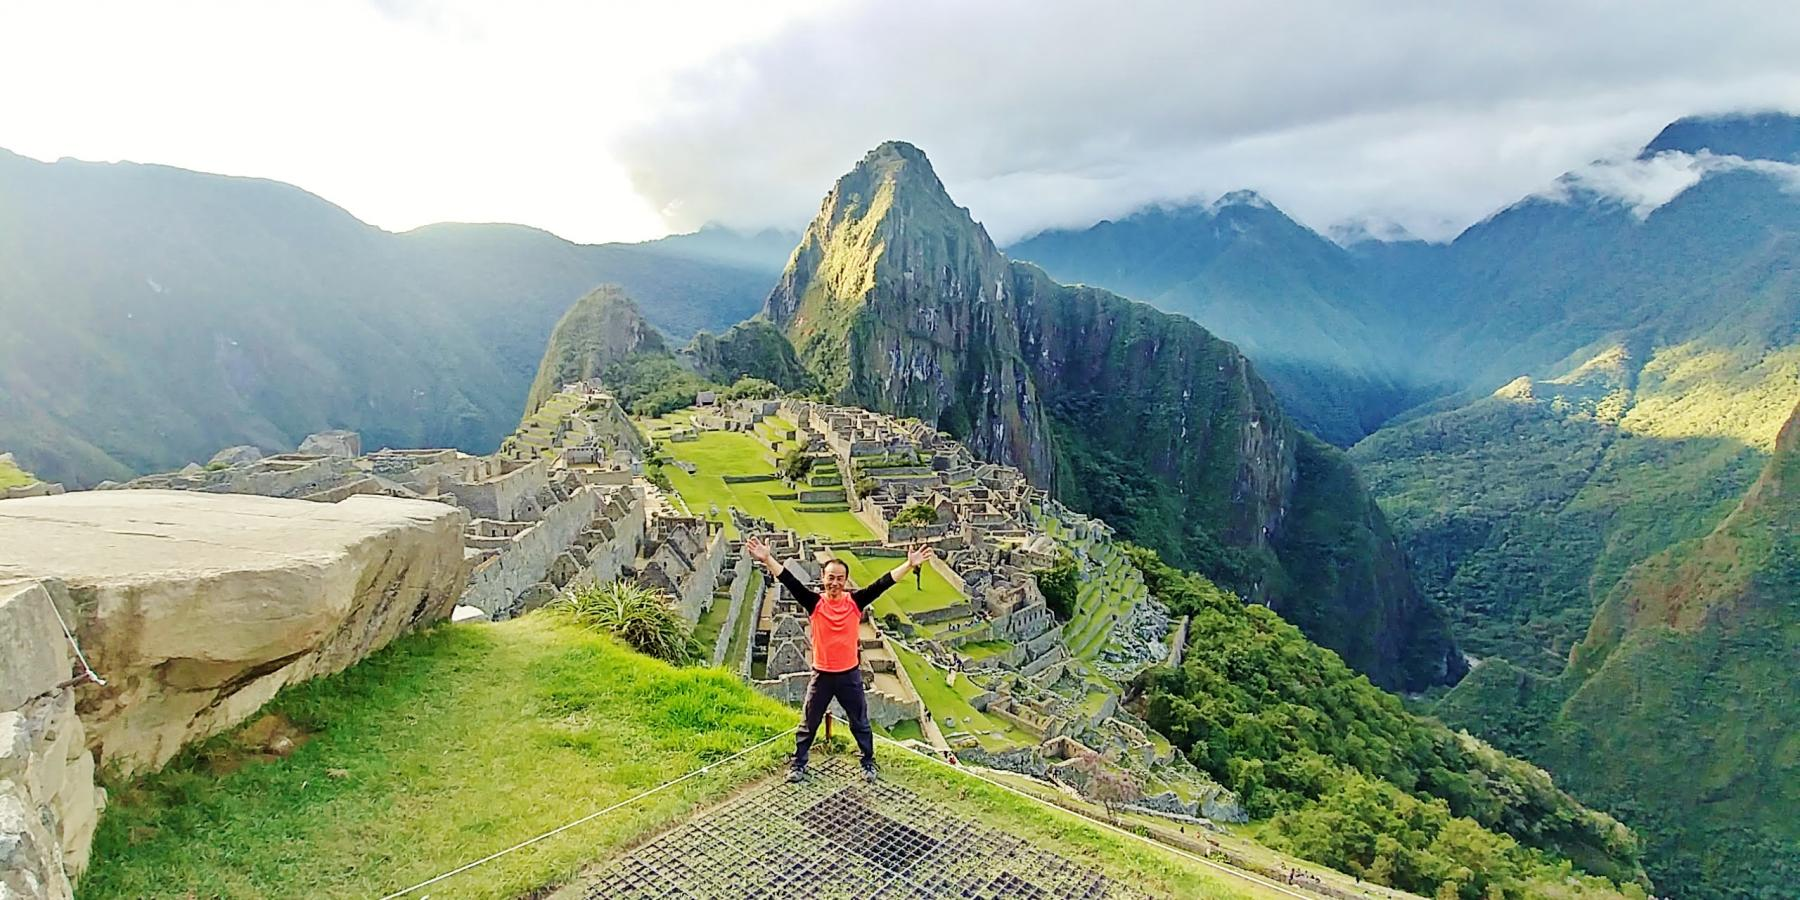 21Days South America: Peru, Bolivia, Argentina, Brazil - Sep 2019 (Private Tour) starting at South America